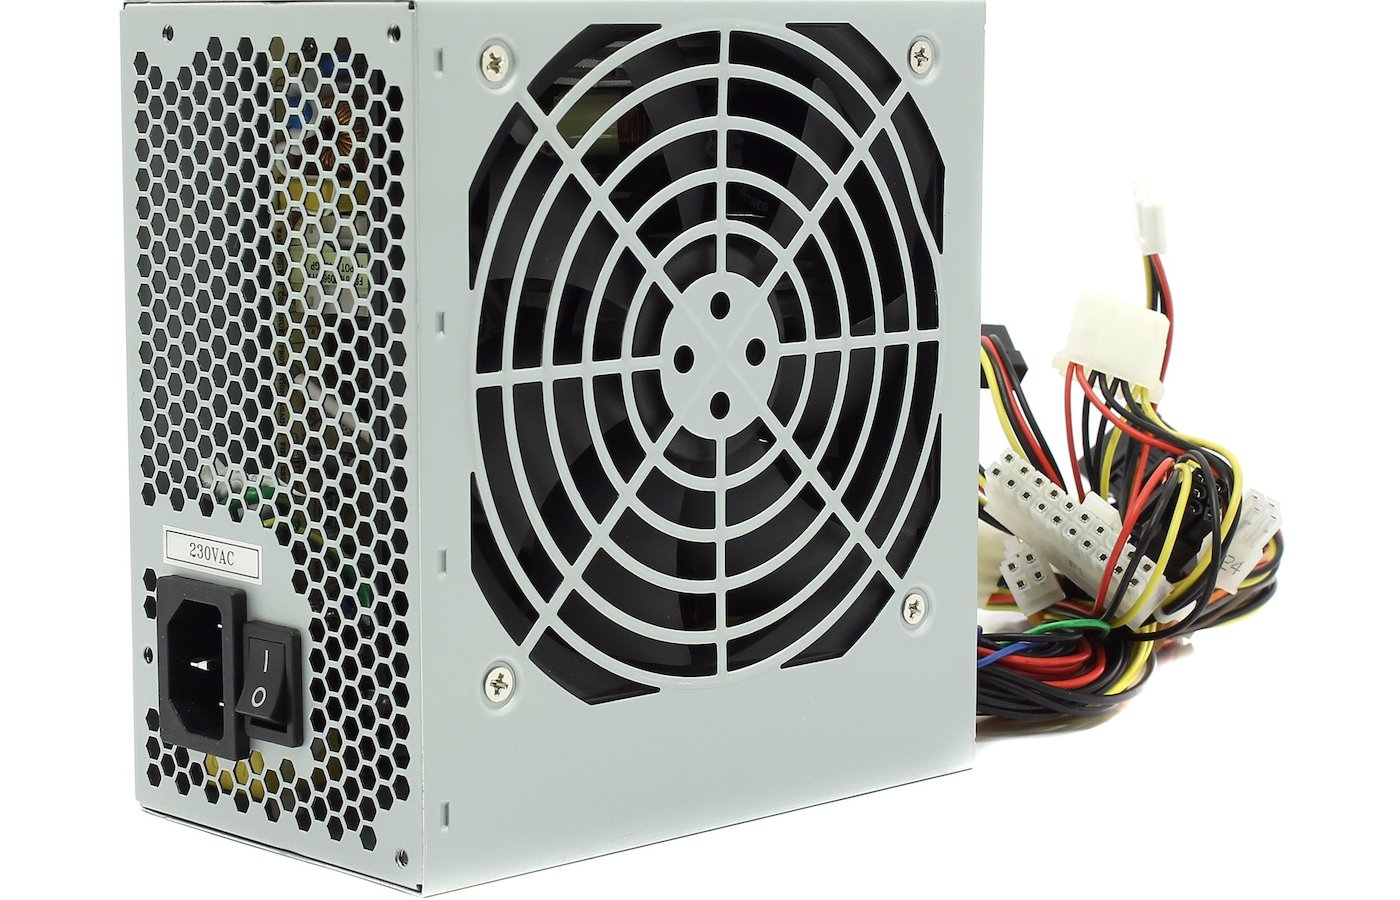 Блок питания FSP ATX 400W ATX-400PNR-I (24+4pin) 120mm fan 2xSATA